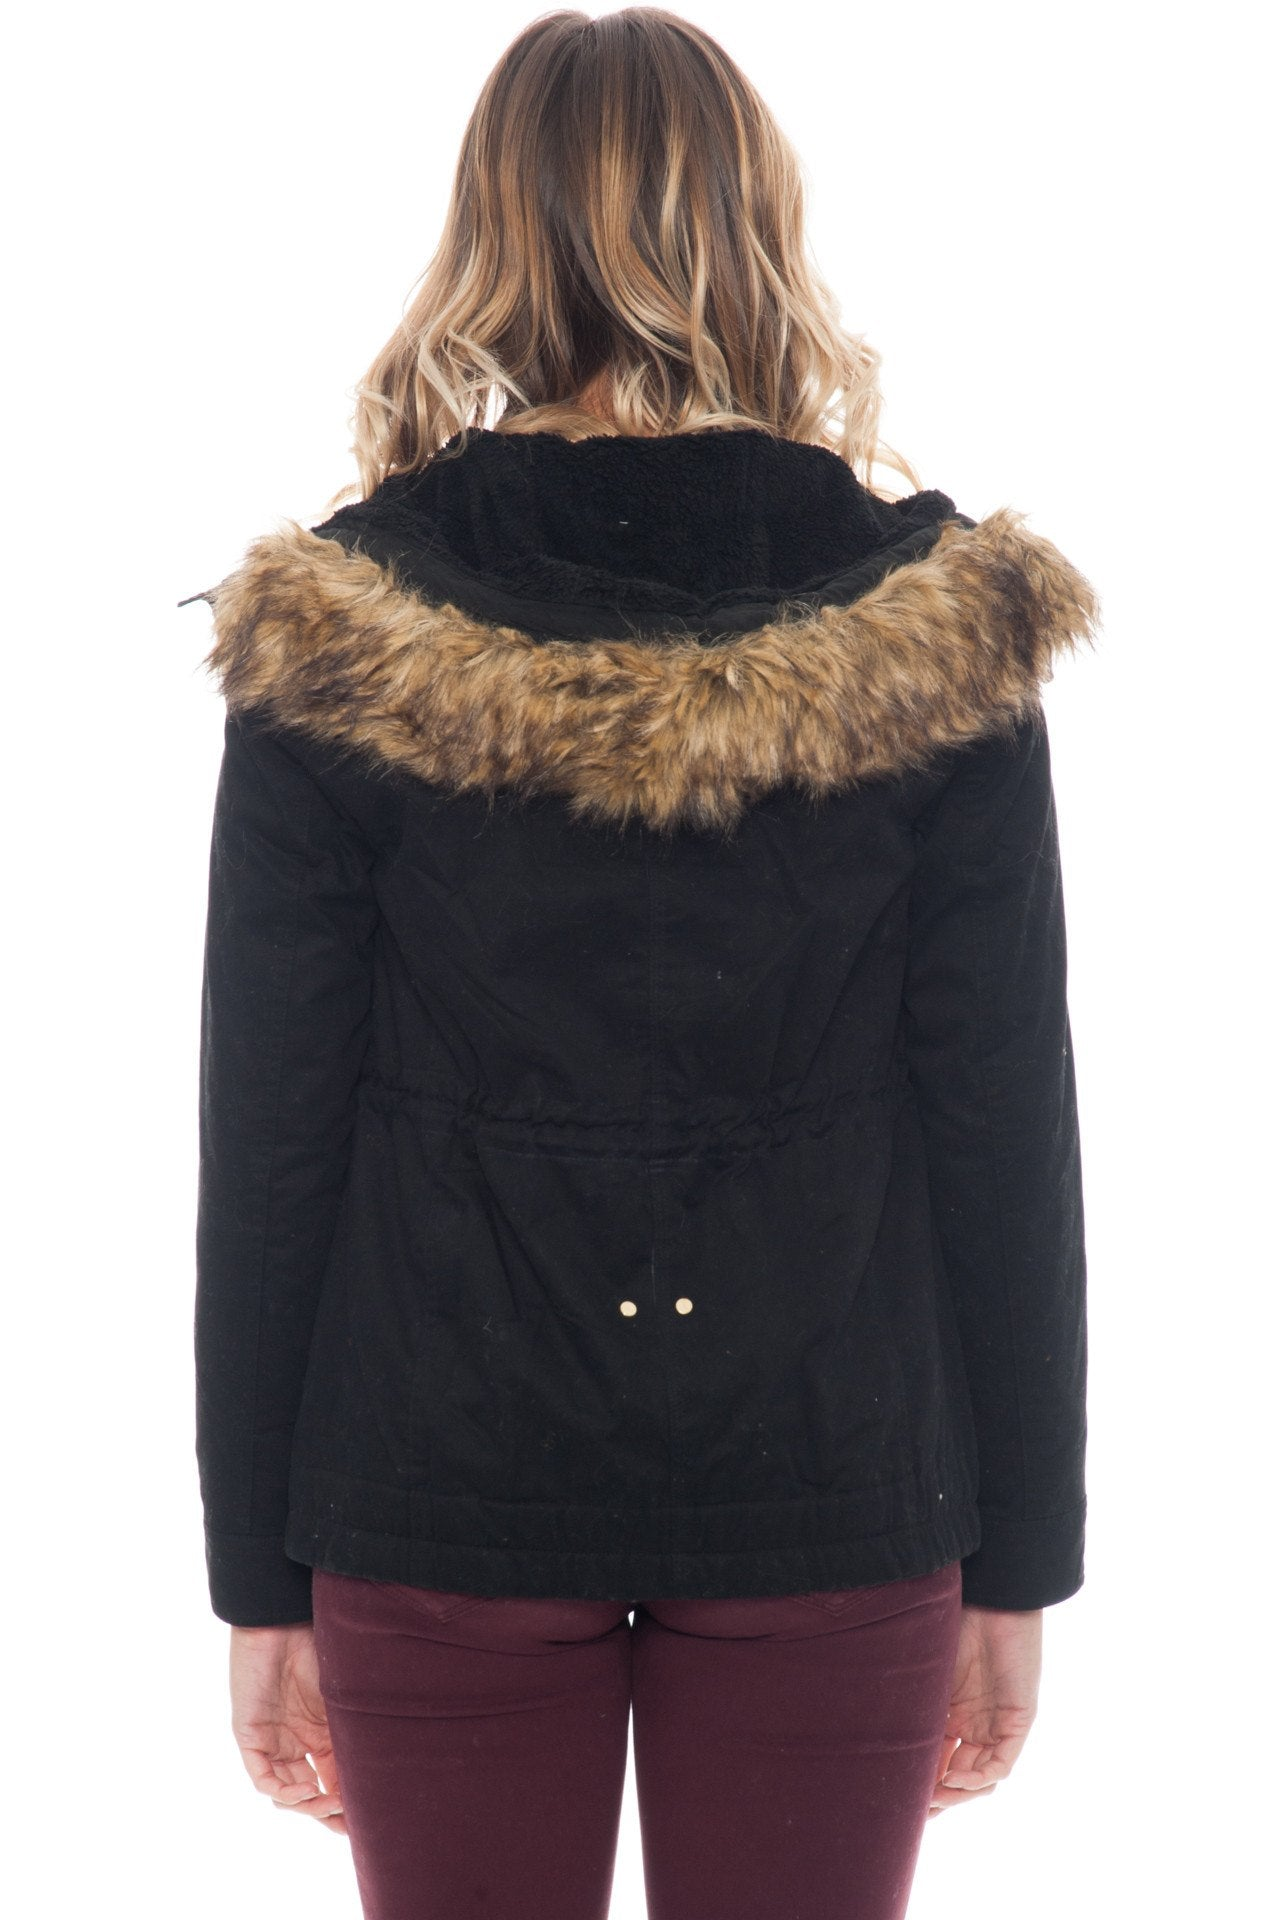 Jacket - Double Lined with Fur Hood and Full Length Zipper (Final Sale)